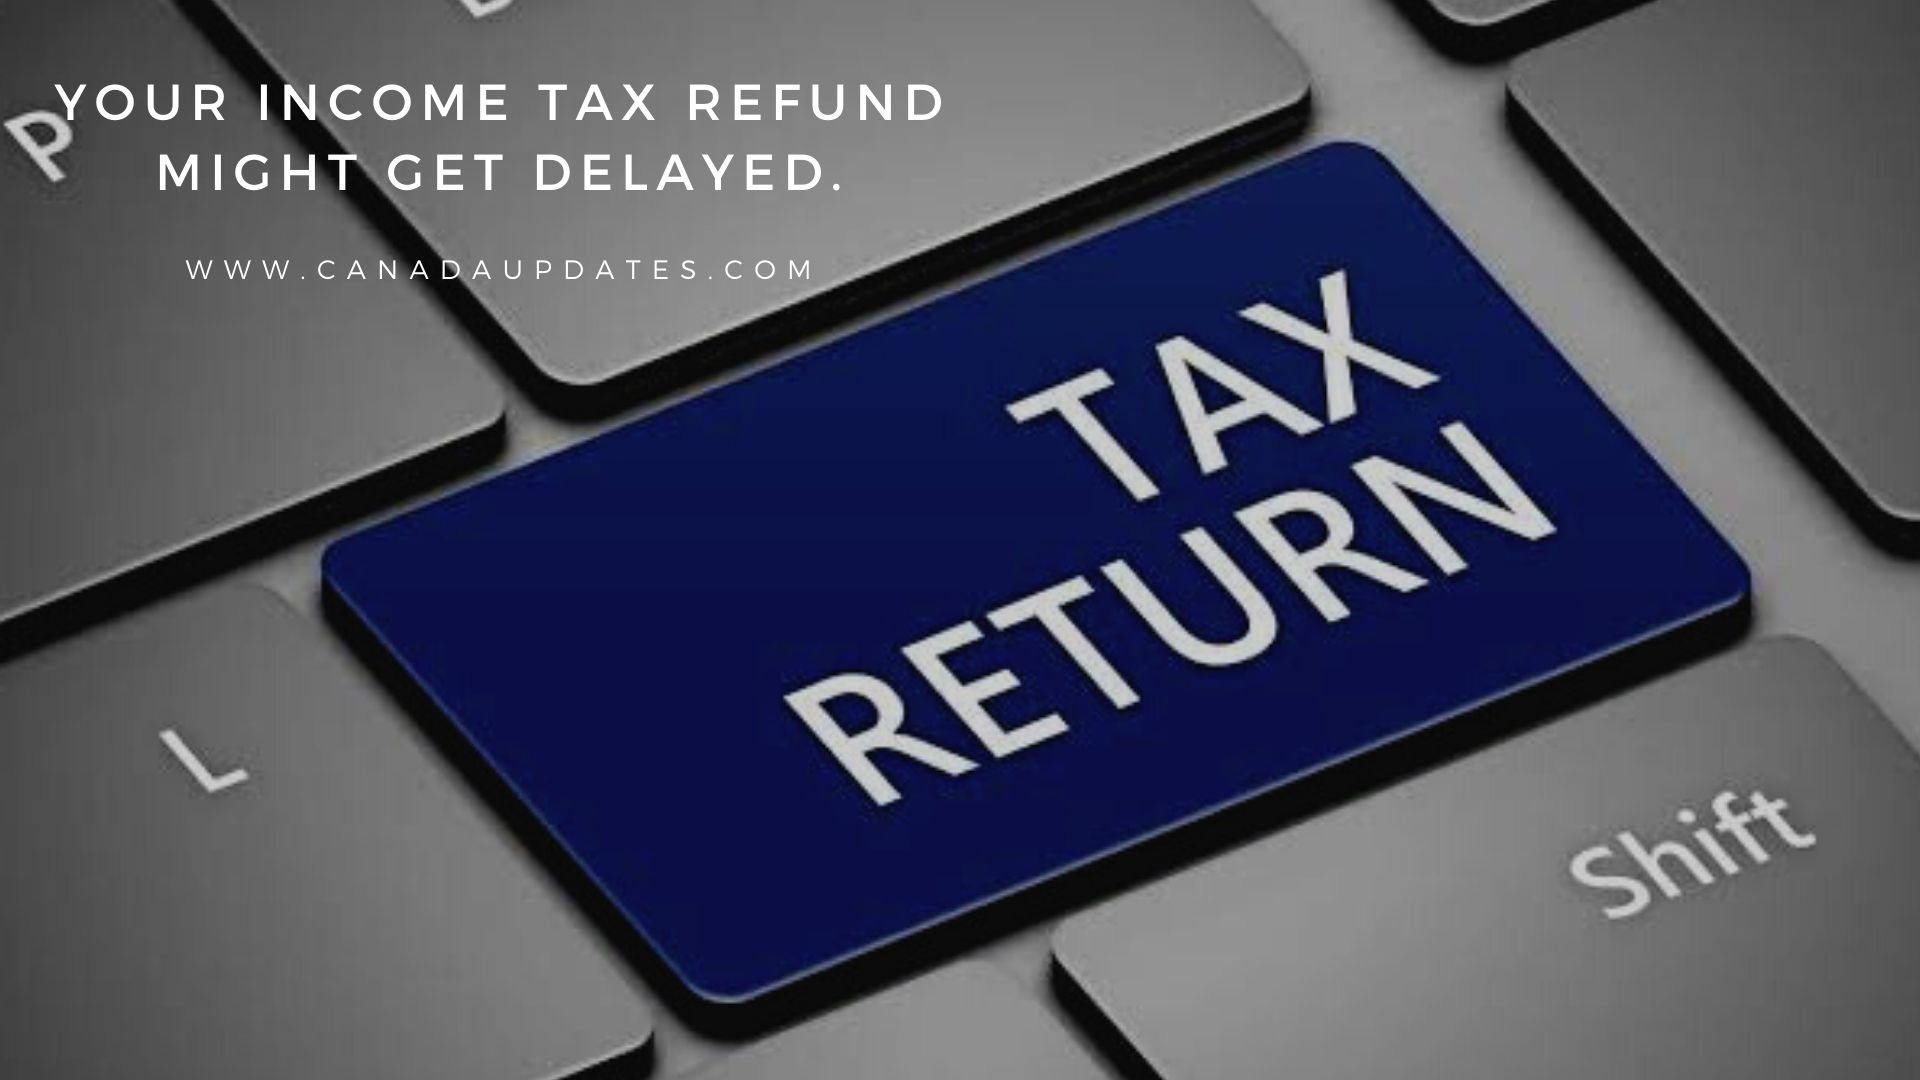 Consequences of not Filing the Income Tax Return 4